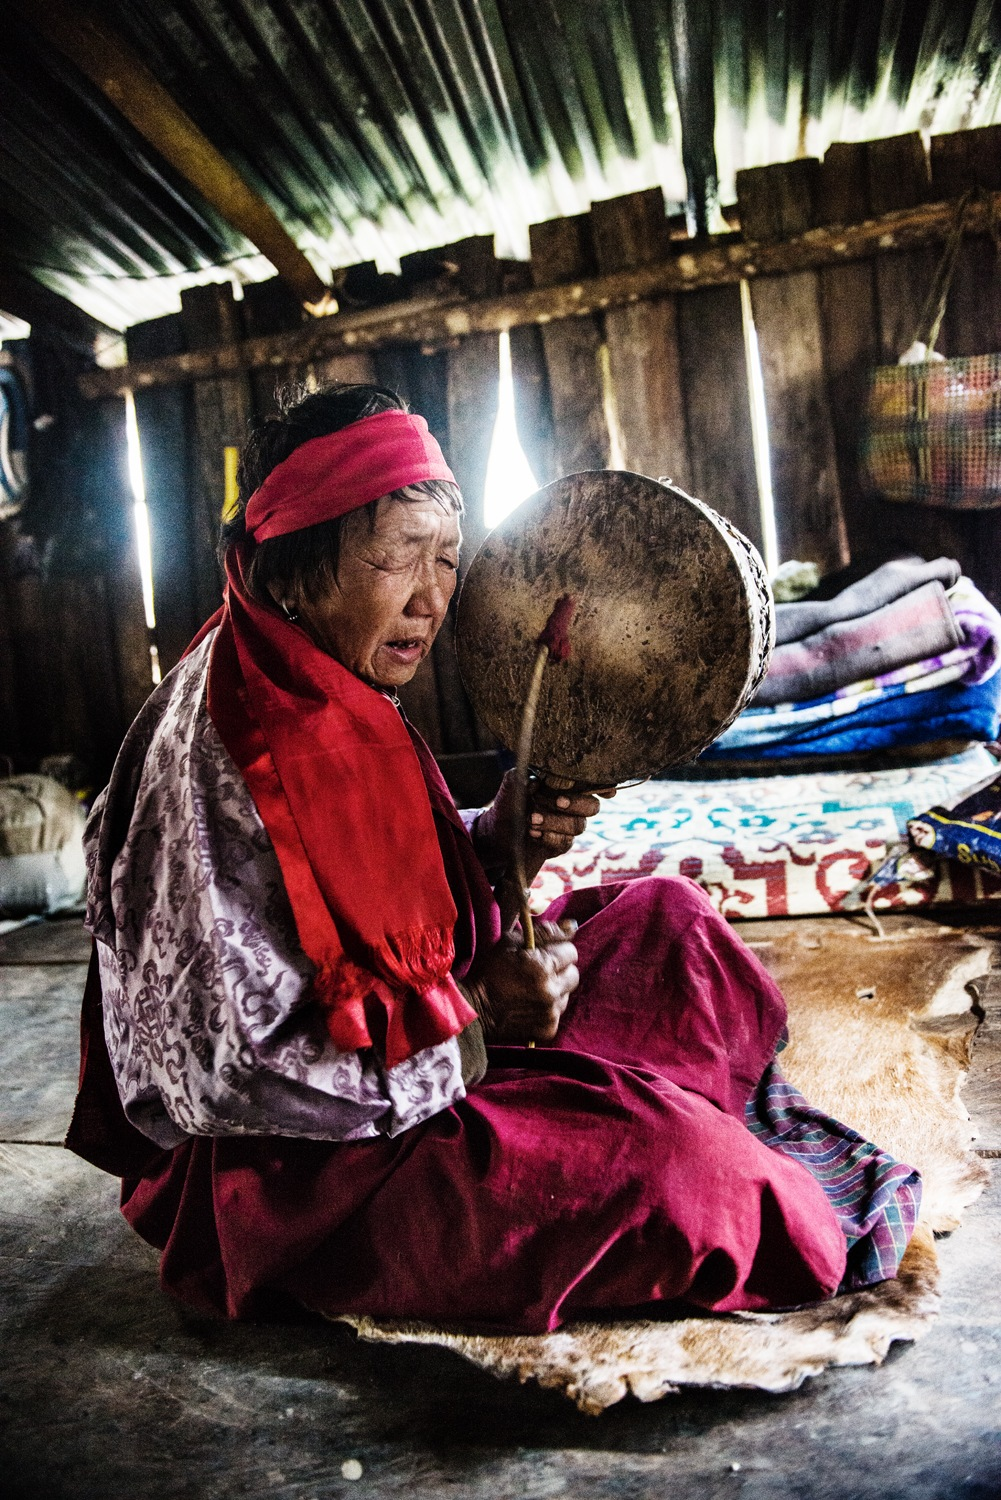 One of the last Shaman in Bhutan by Michael Marquand